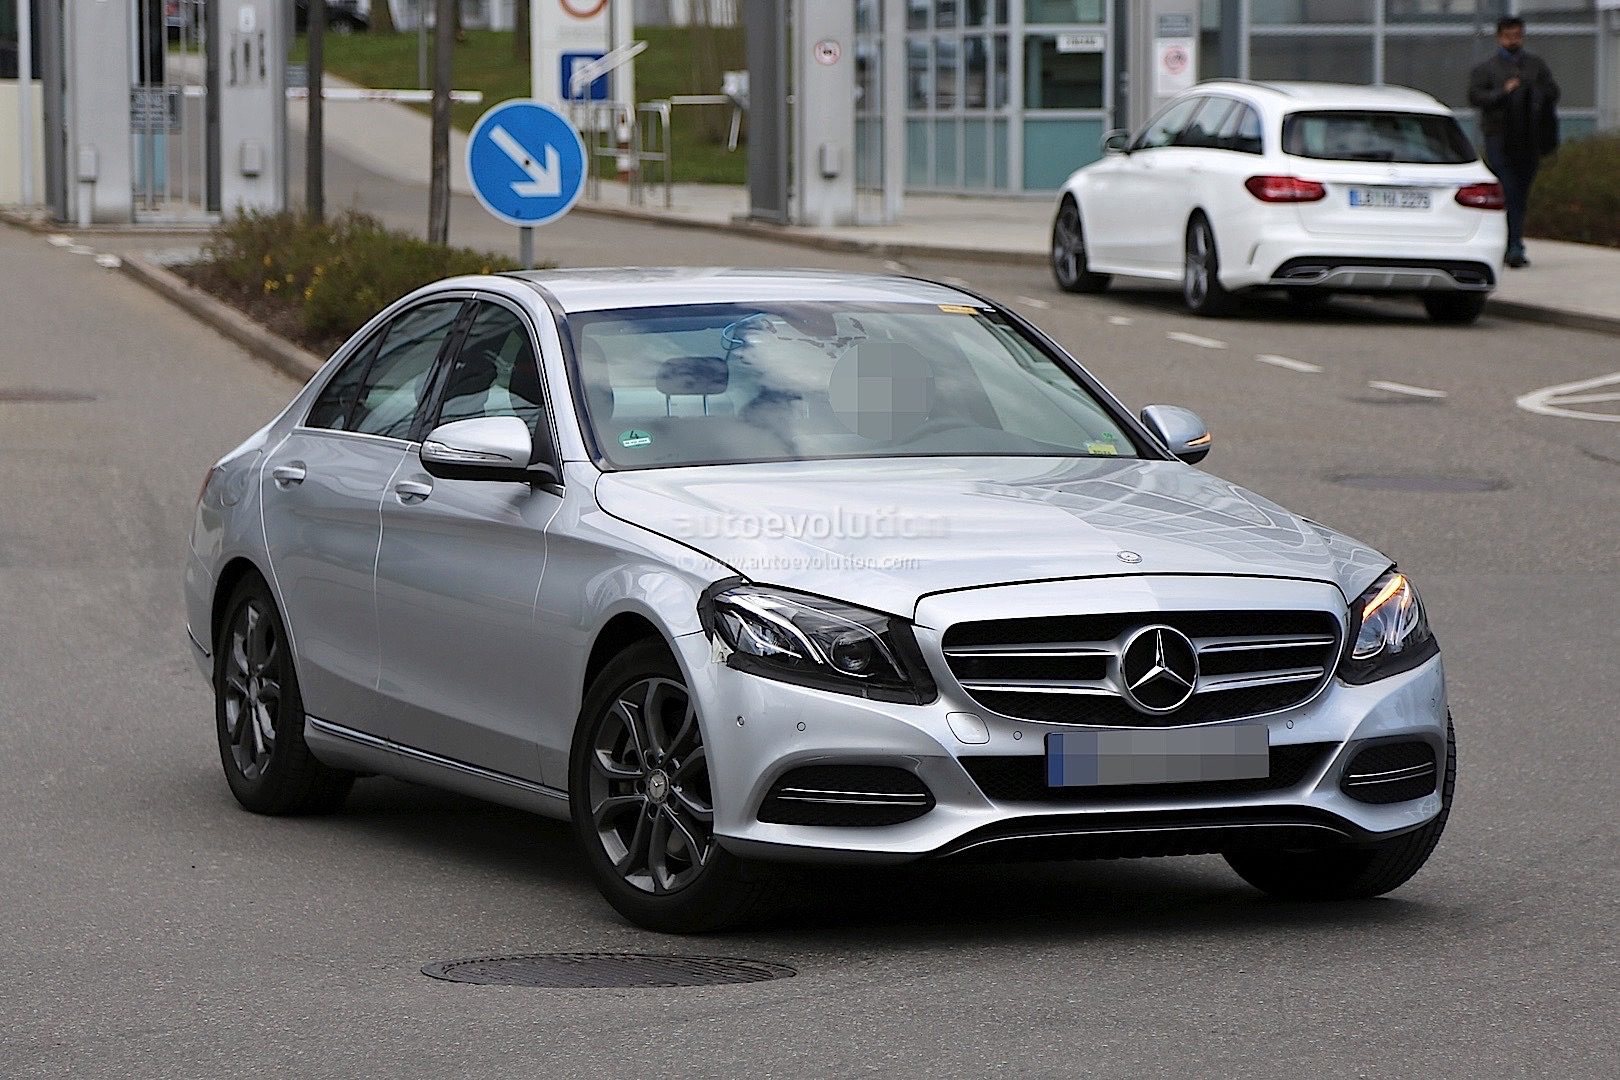 2017 mercedes benz c class facelift spied in germany for Mercedes benz c 2017